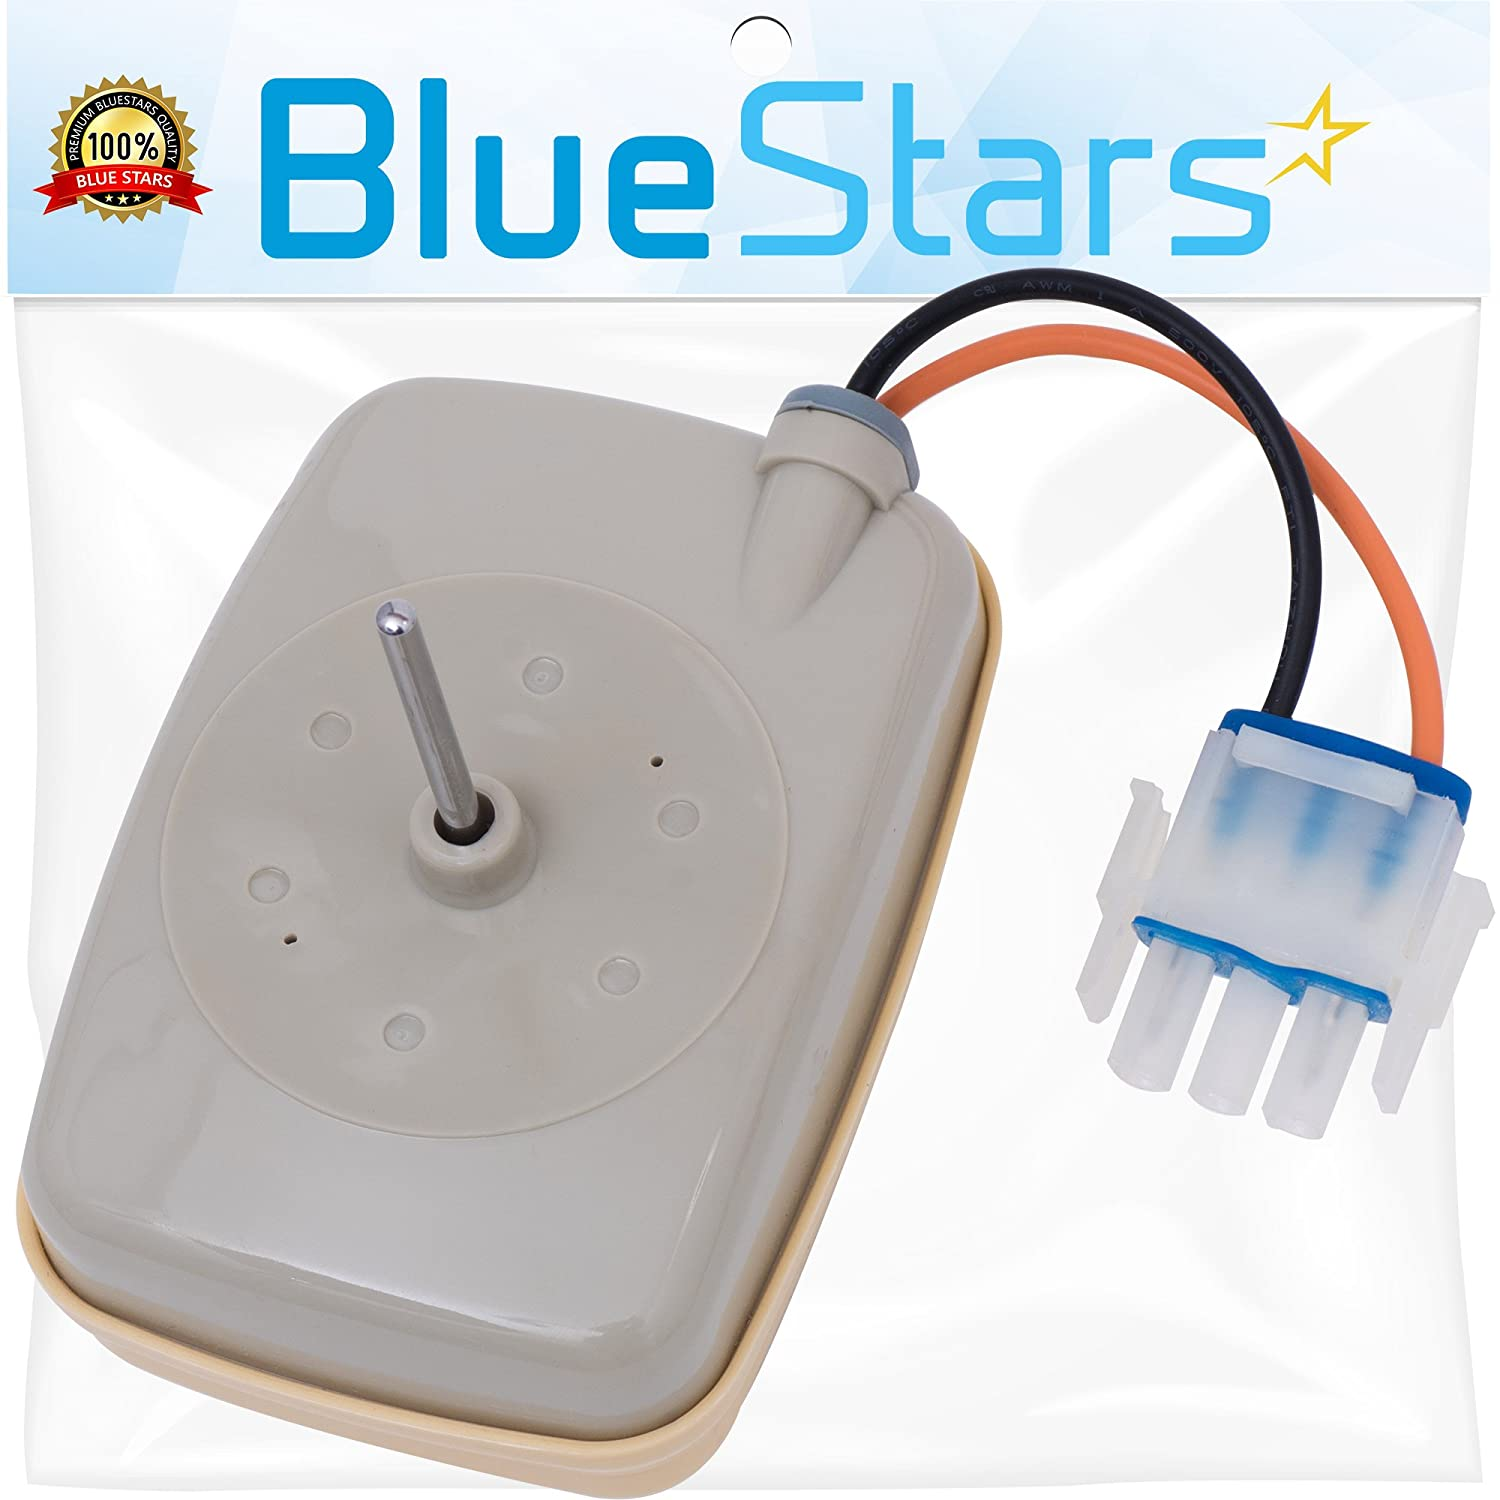 Ultra Durable WR60X10141 Refrigerator Evaporator Fan Motor Replacement by Blue Stars - Exact Fit for GE & Hotpoint Refrigerator - Replaces WR60x10138 WR60x10346 AP5955766 PS10063450 WR60X23584